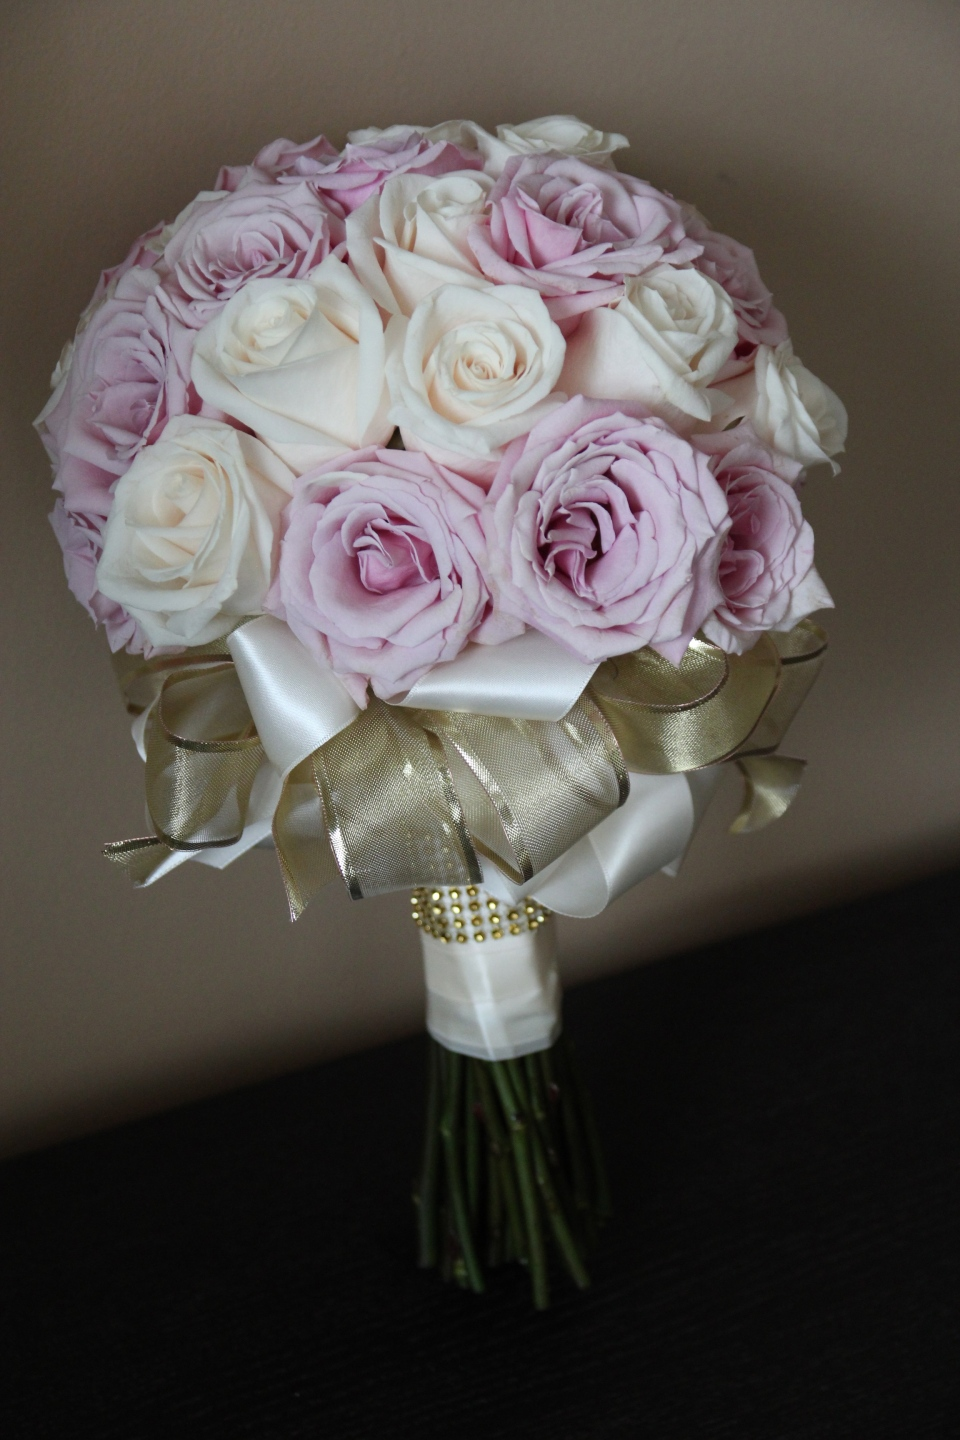 Bridal bouquet of blush and ivory roses with gold ribbon detailing.